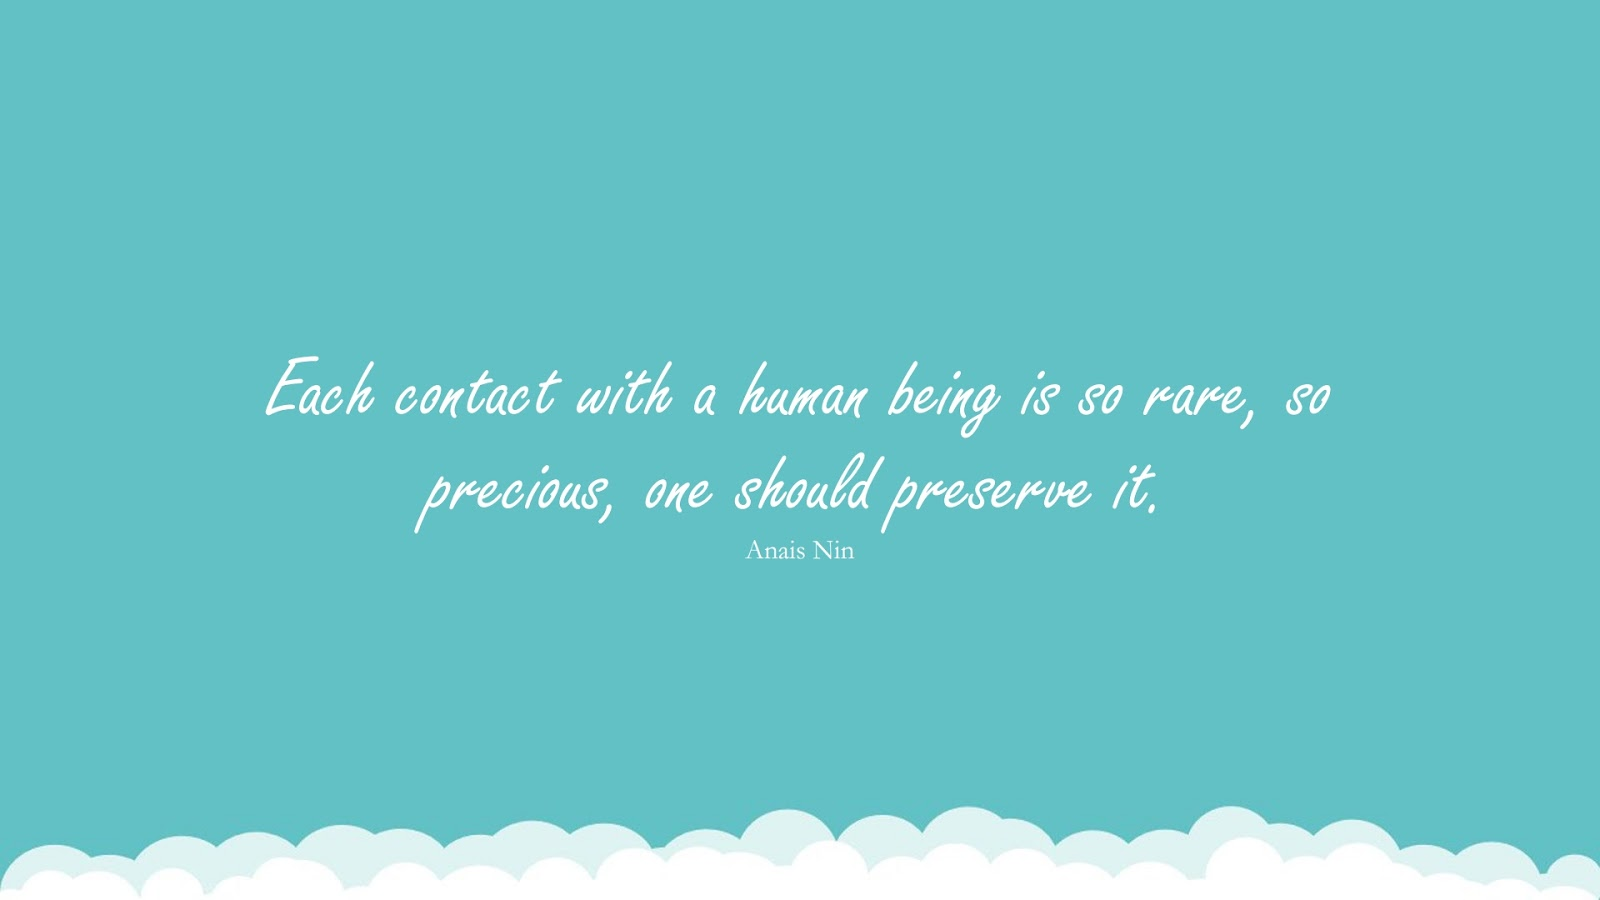 Each contact with a human being is so rare, so precious, one should preserve it. (Anais Nin);  #HumanityQuotes